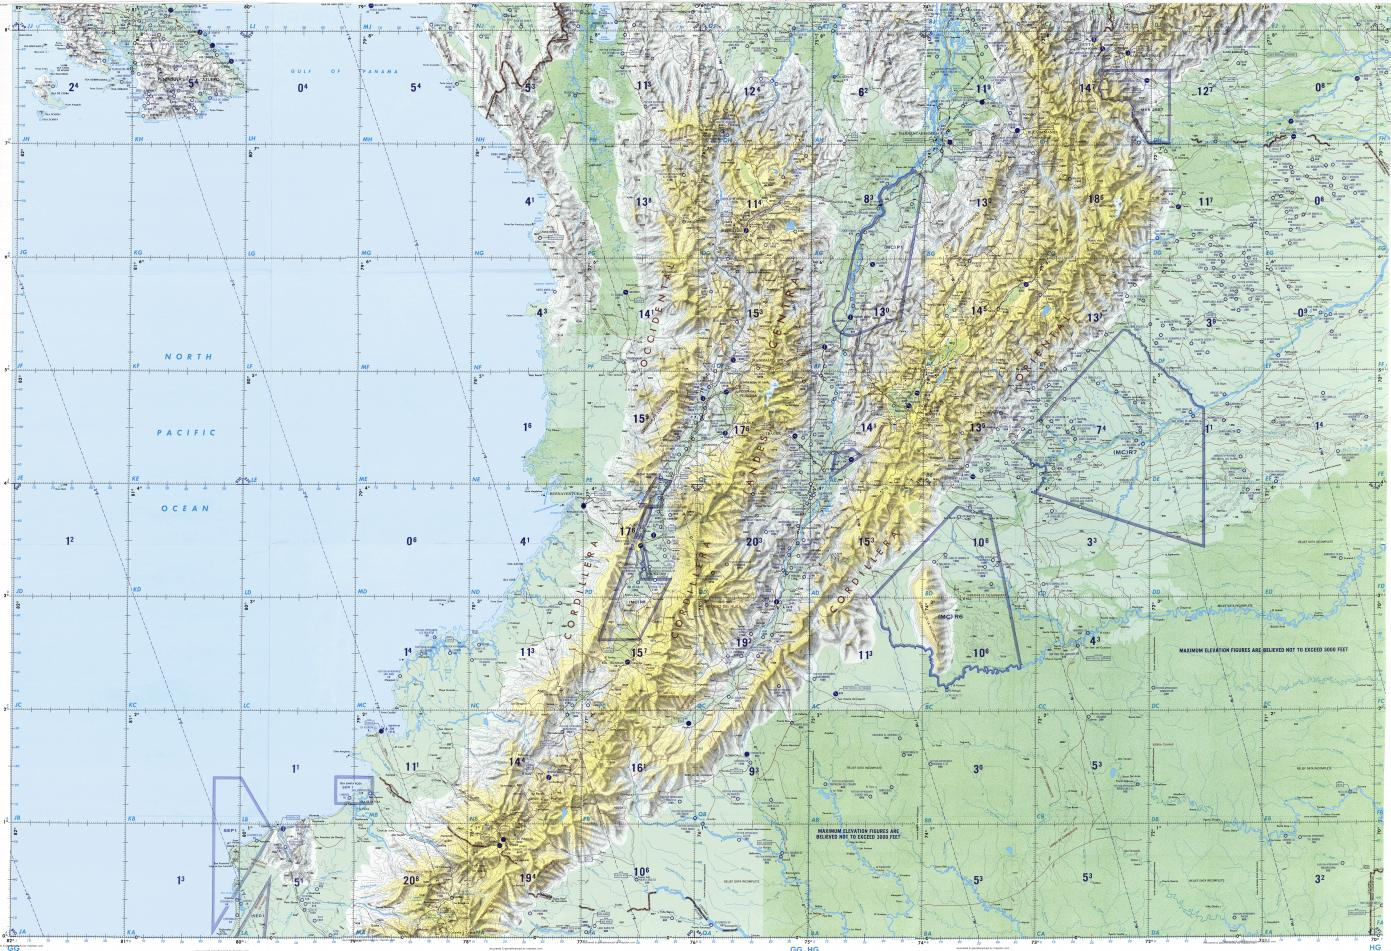 Topographic Map Of Colombia.Download Topographic Map In Area Of Bogota Medellin Cali Mapstor Com